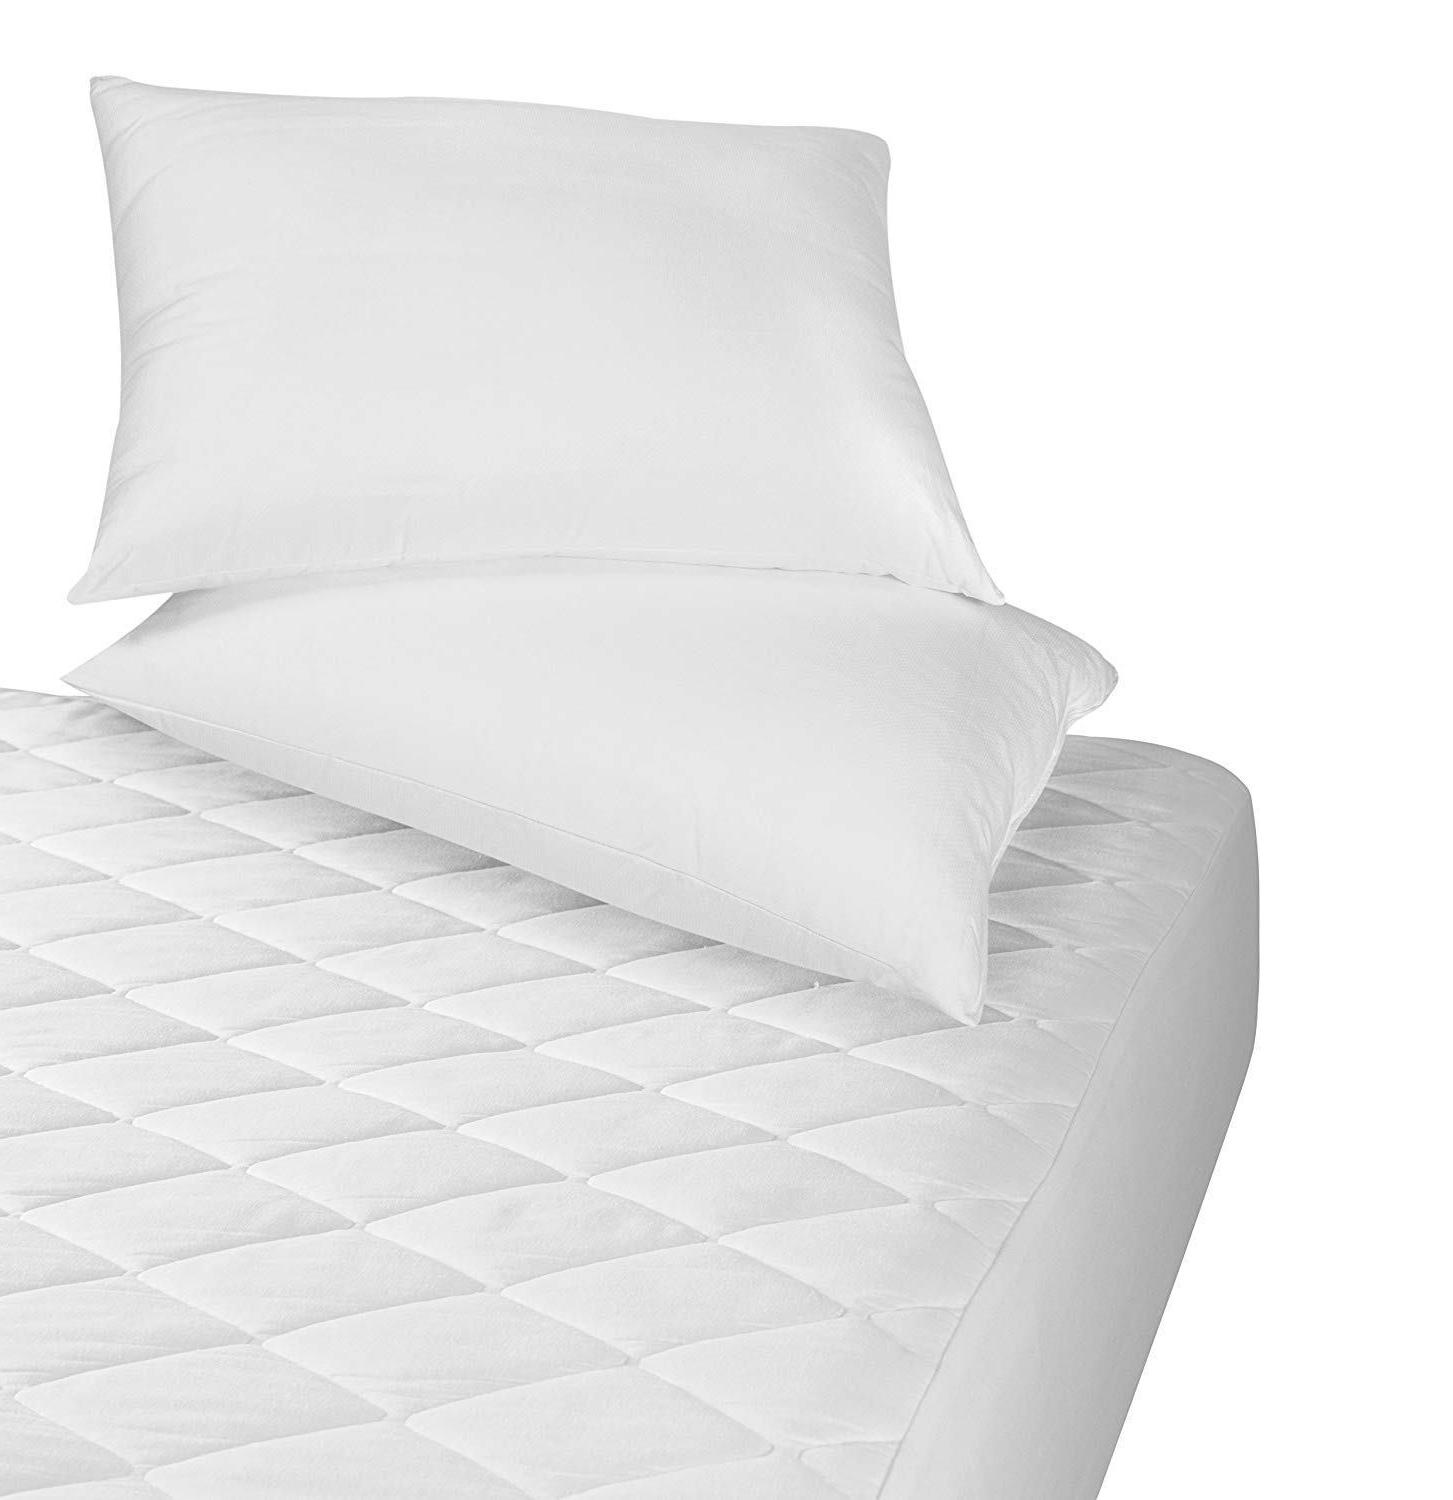 Mattress Cover Pad Lux Collection